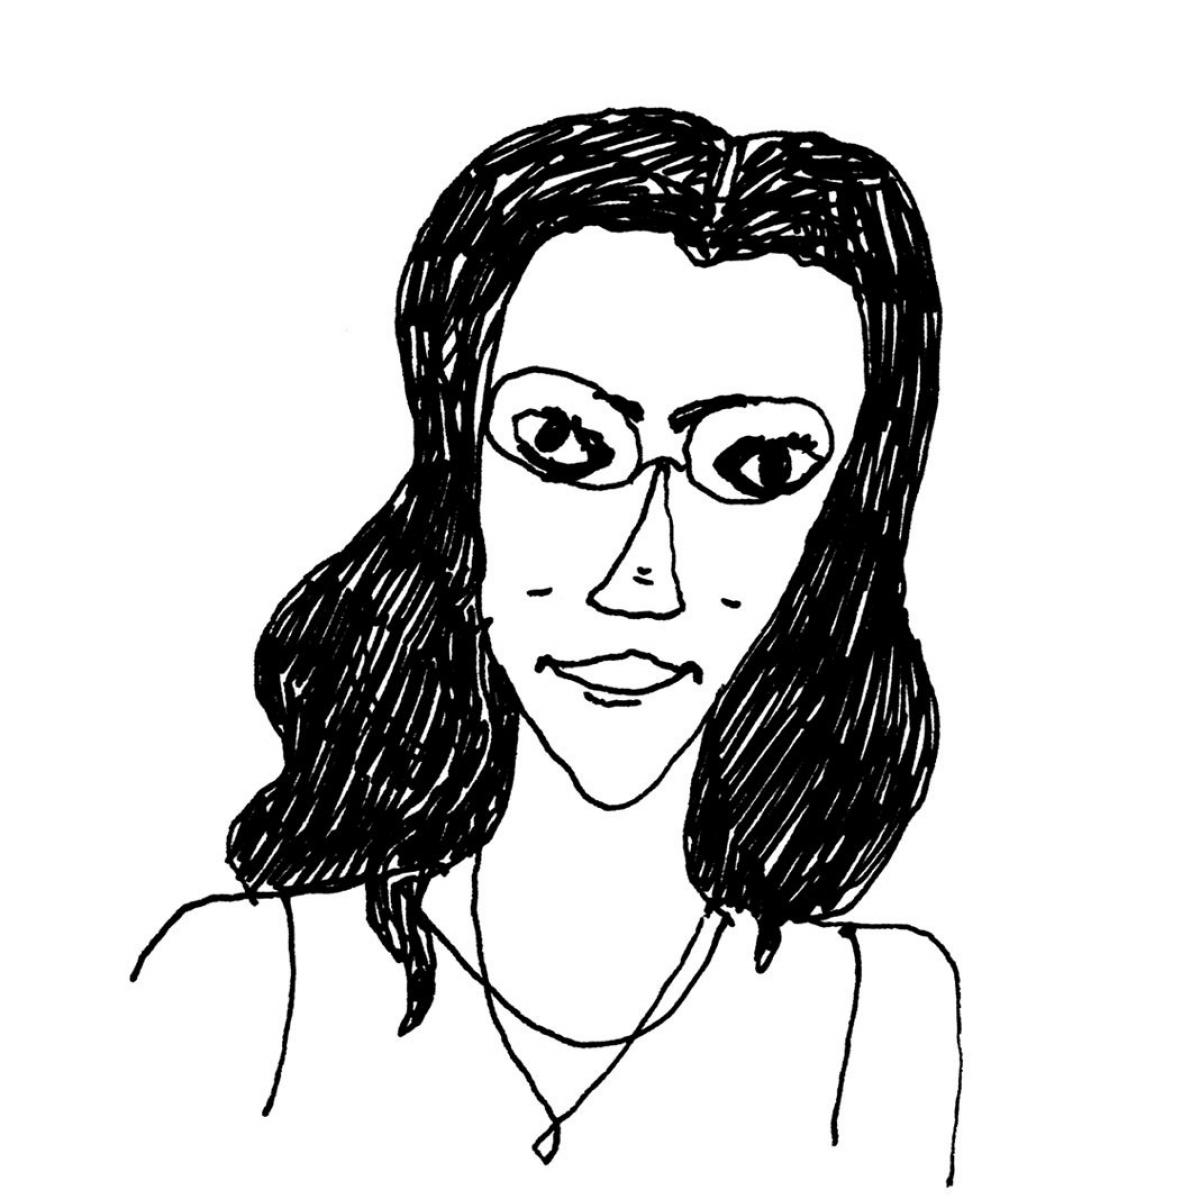 Illustration of Tahneer Oksman by Liana Finck